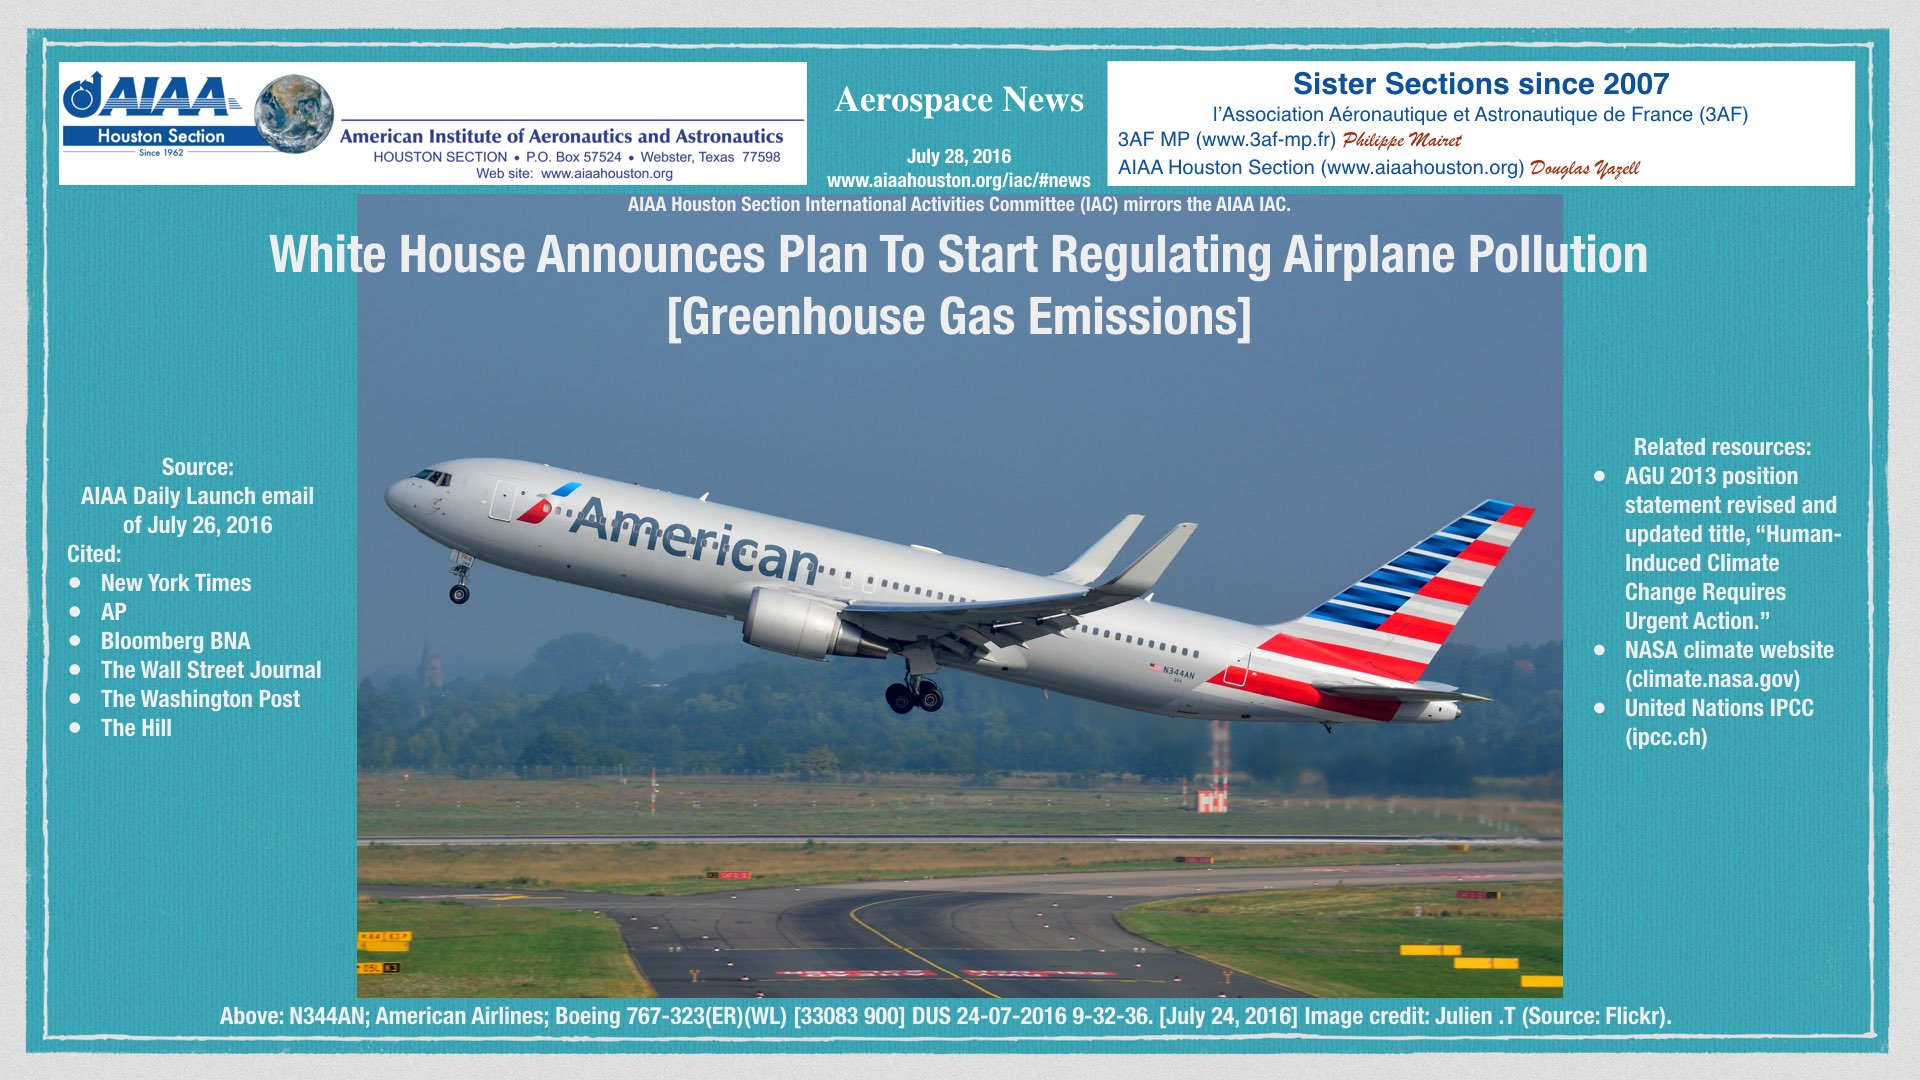 Above: White House Announces Plan To Start Regulating Airplane Pollution [Greenhouse Gas Emissions]. Image credit: Julien .T (Flickr). (Click to zoom.)